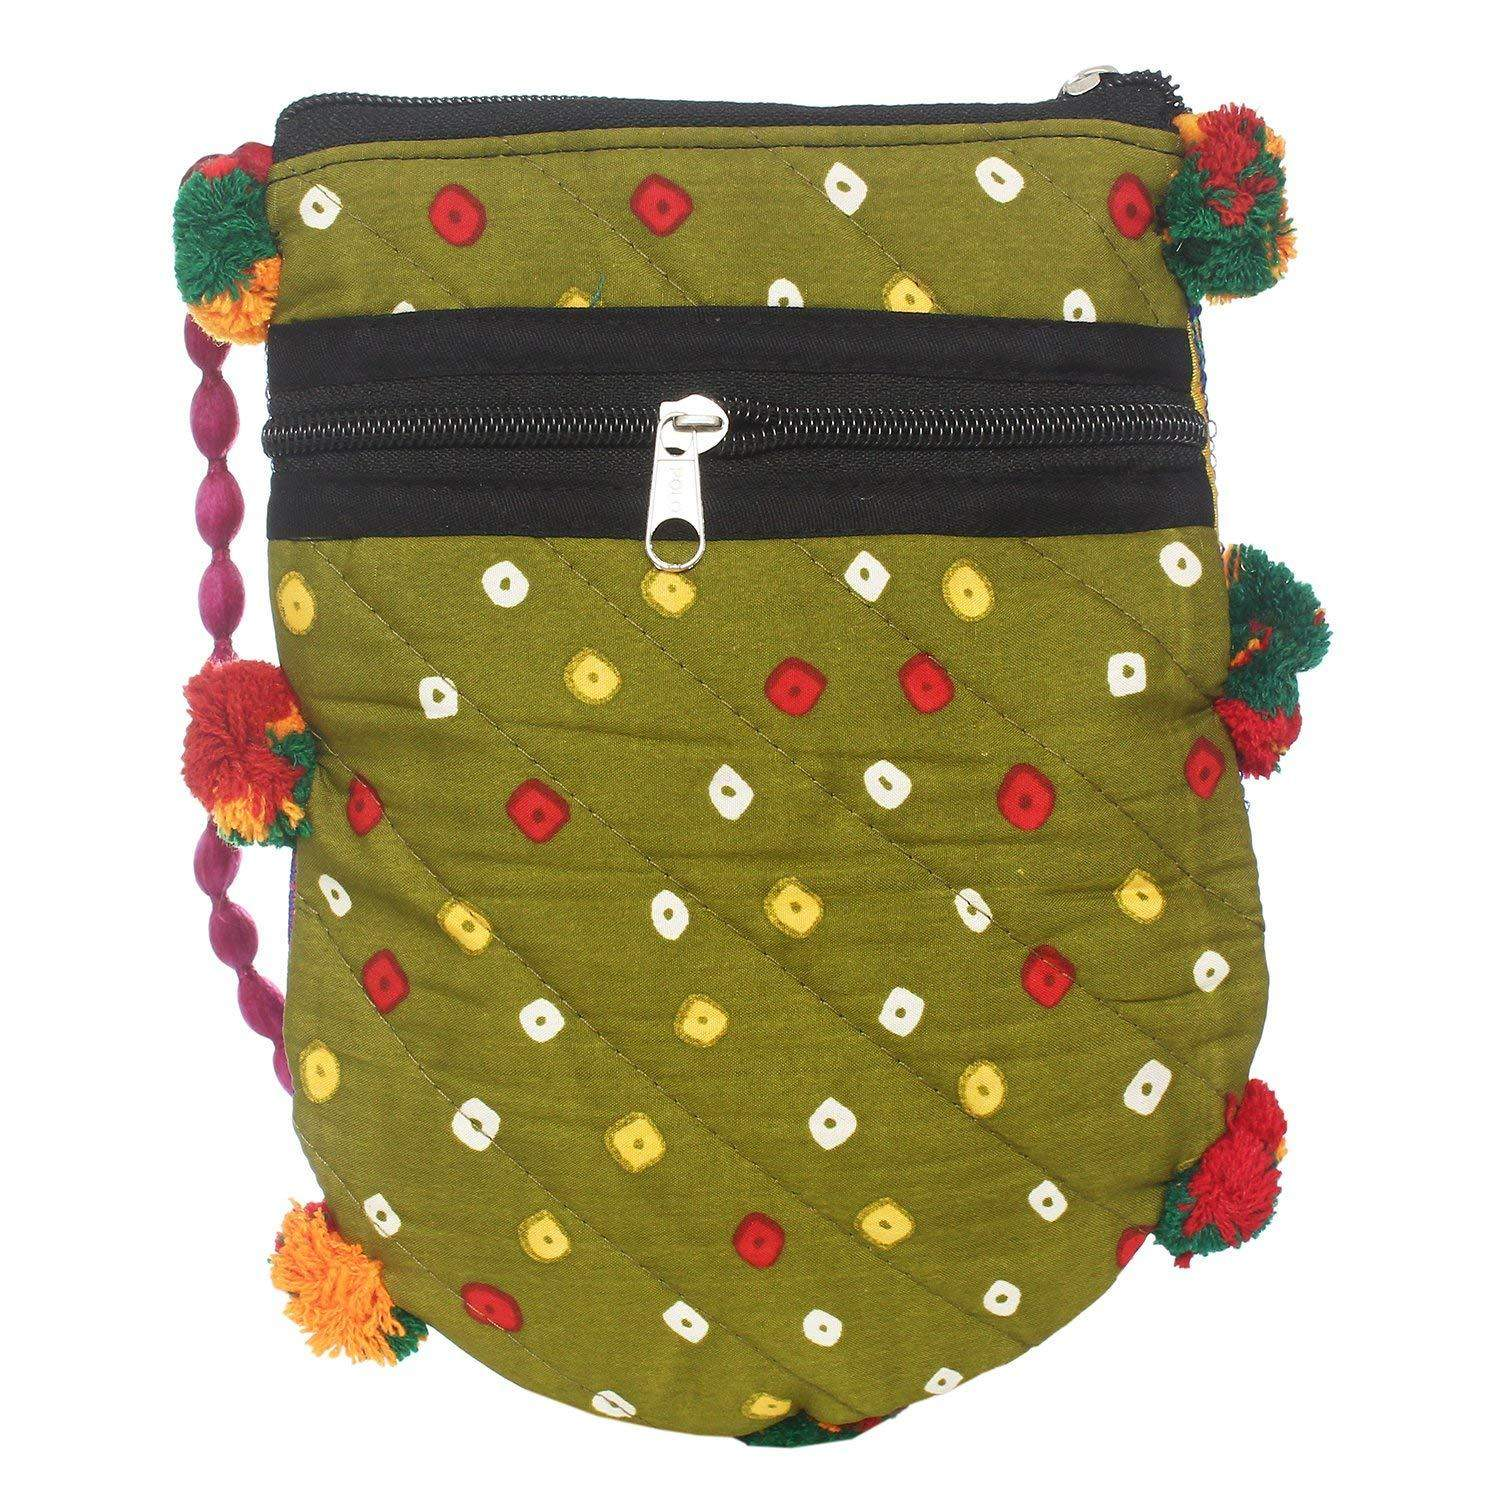 Jaipuri Art Handicraft Traditional Sling Bag (Green) - Bagaholics Gift